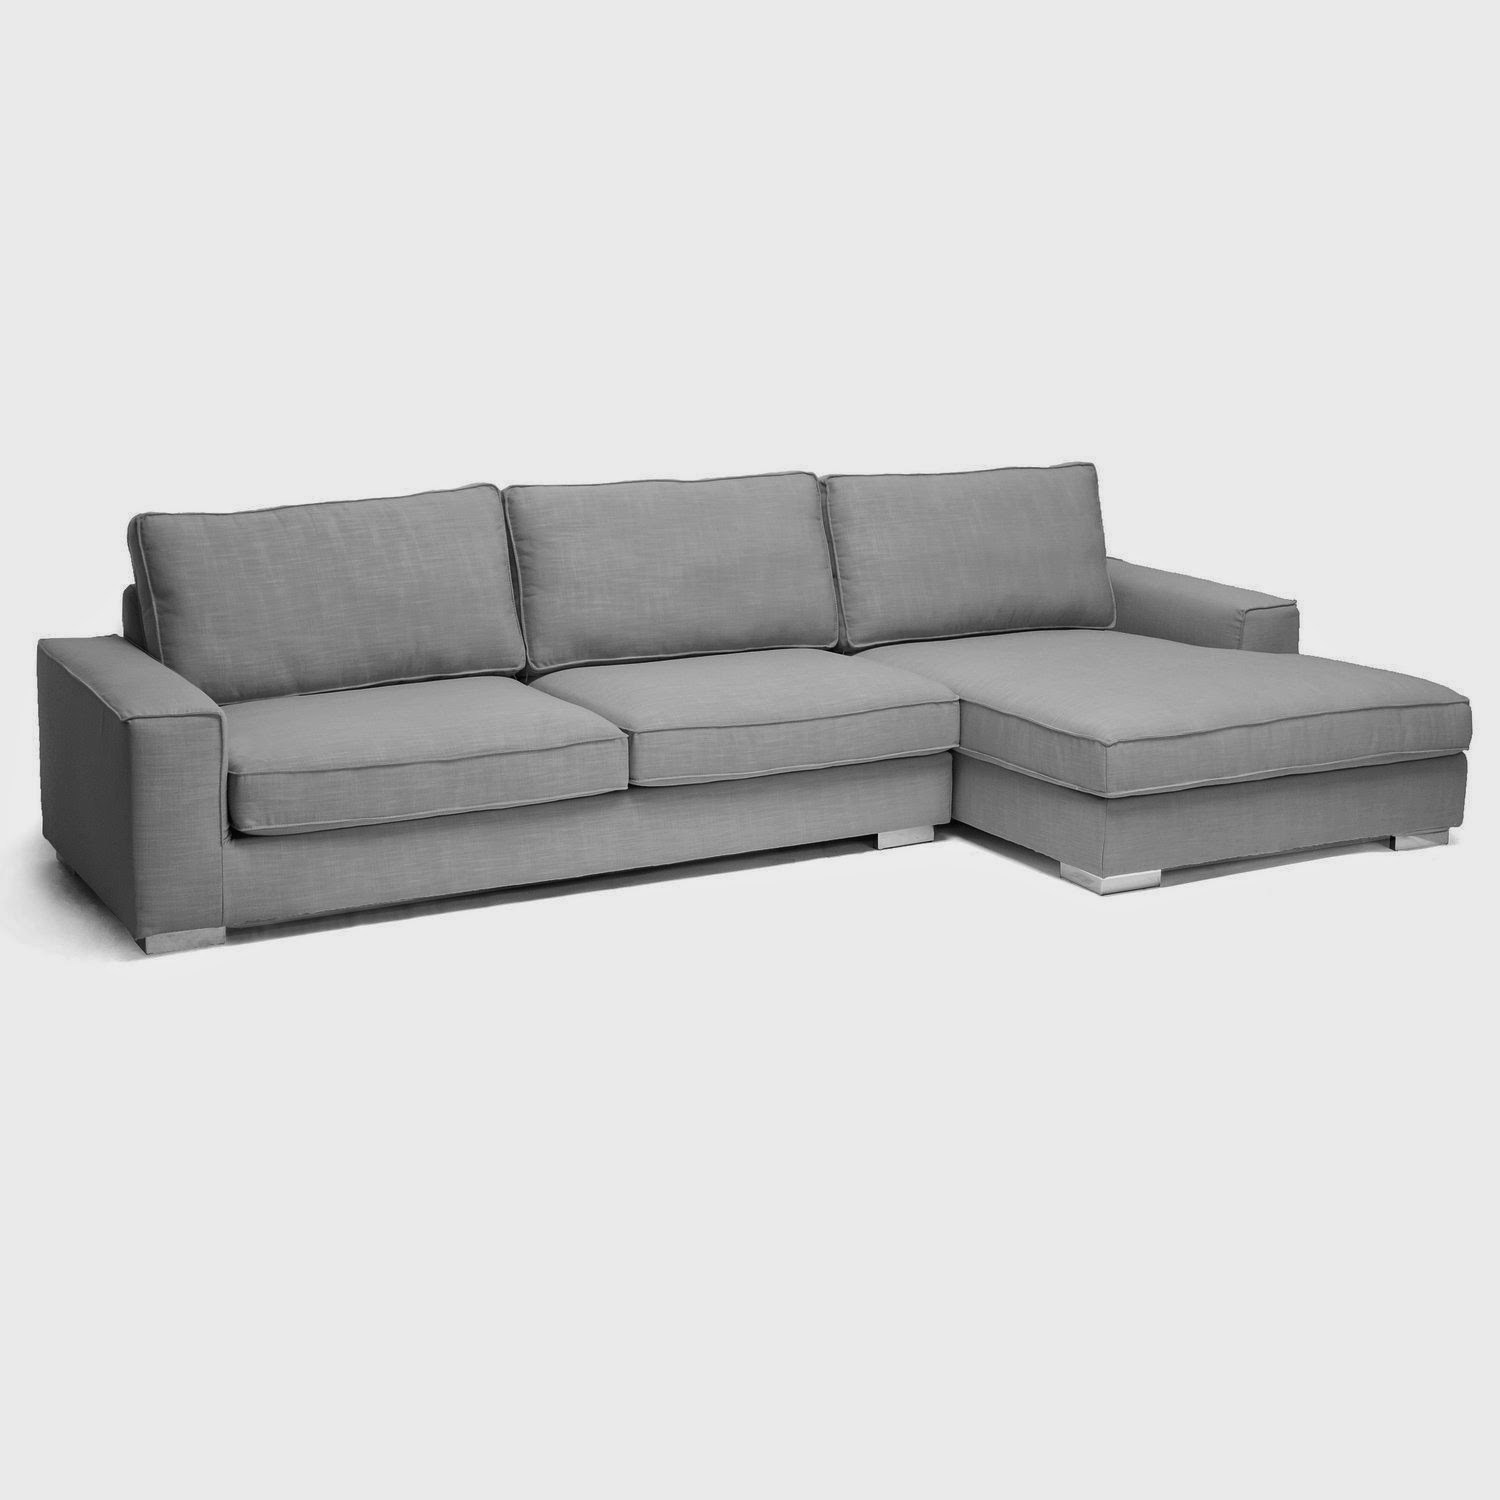 Grey Modern Sofa Bed How To Hide Cat Scratches On Leather Gray Couch Sectional